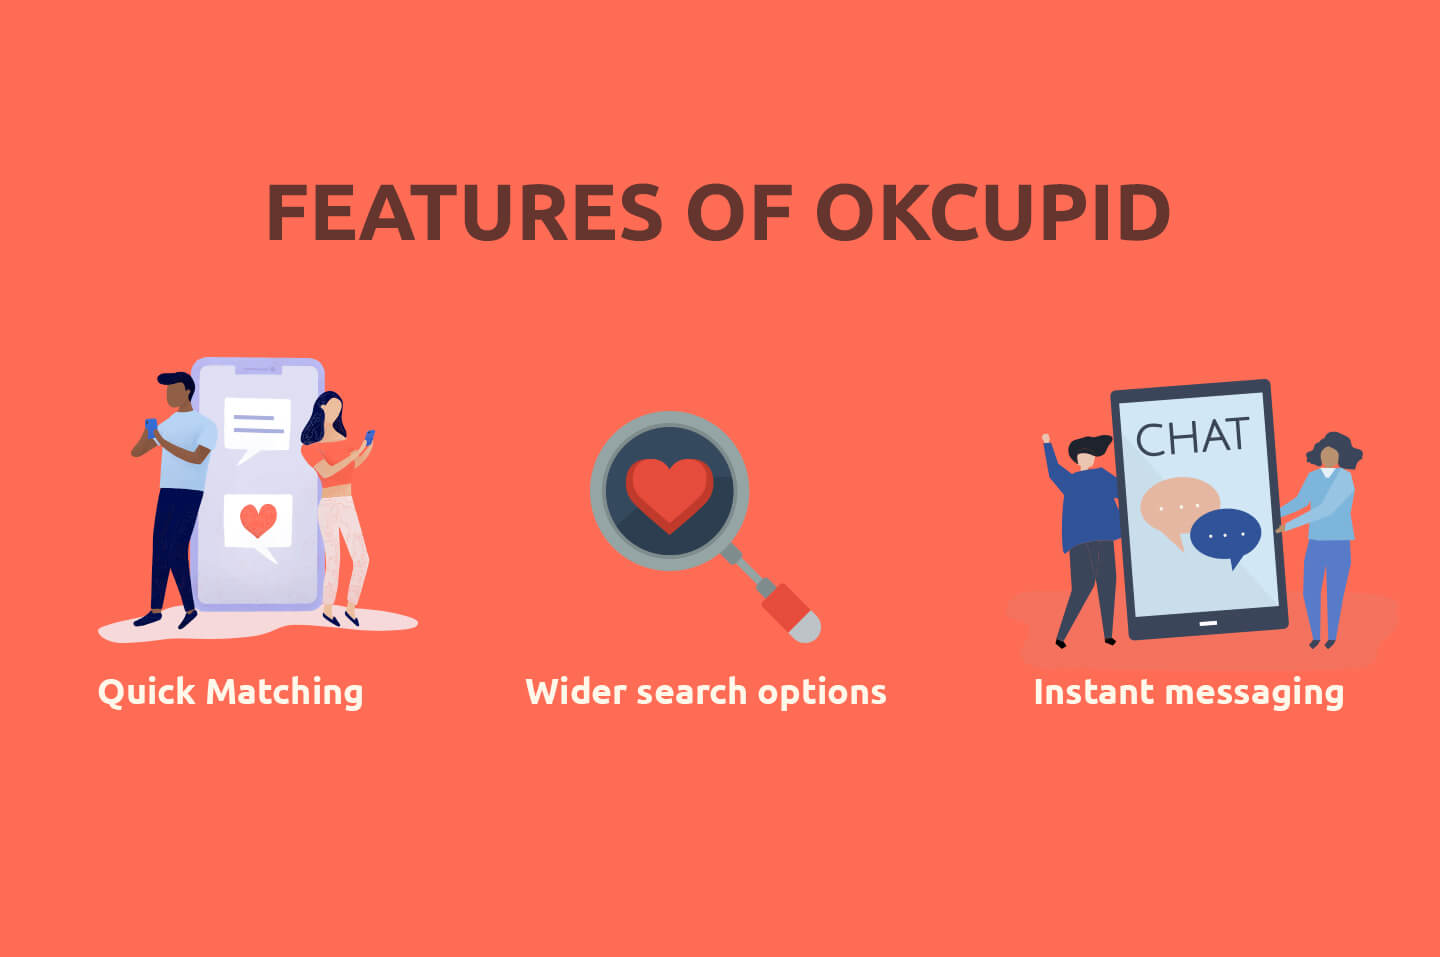 Features of okcupid